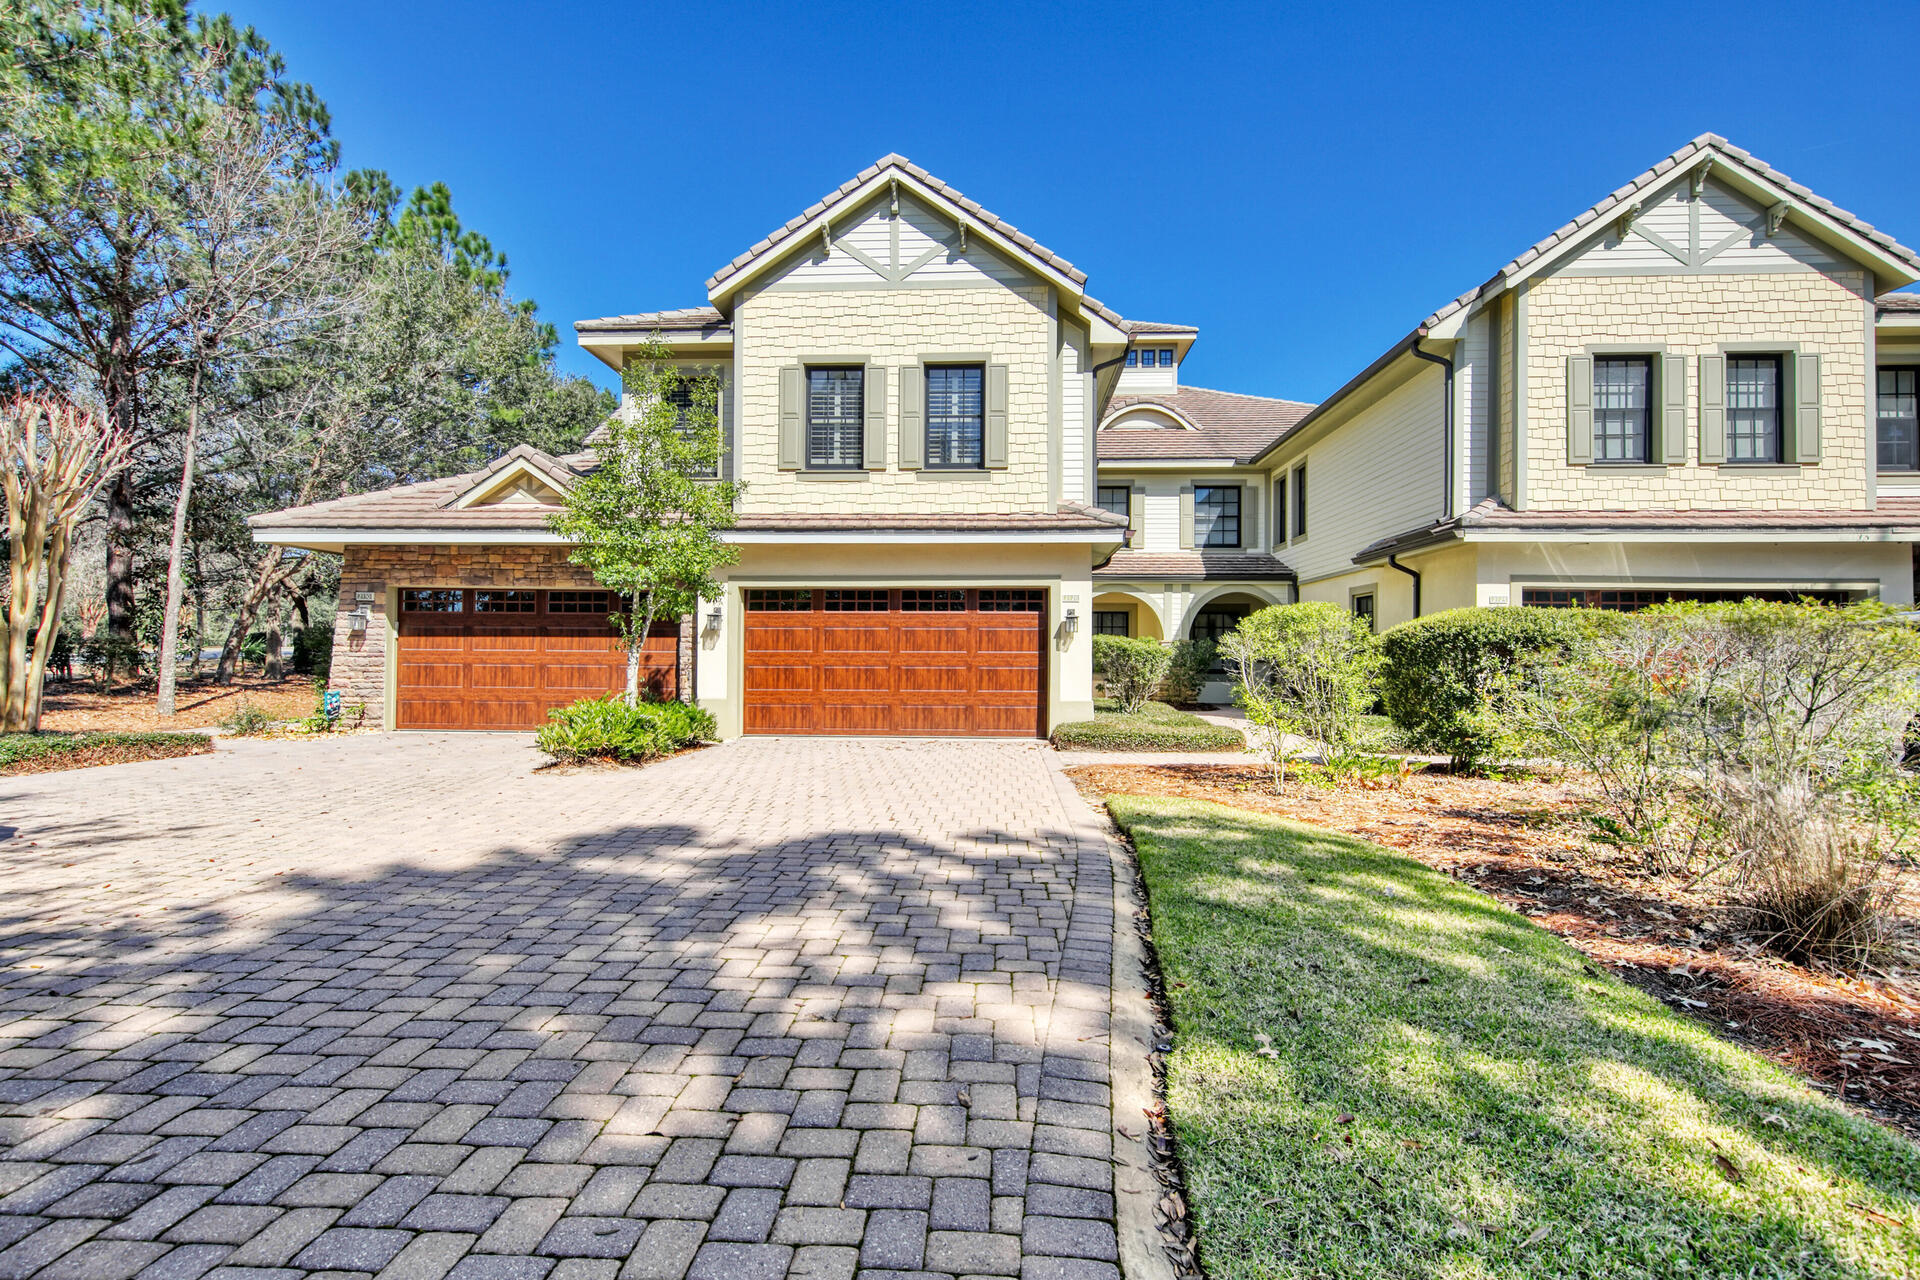 BACK ON THE MARKET!! GREAT LOCATION DIRECTLY ACROSS THE STREET FROM THE SHARKS TOOTH GOLF CLUBHOUSE.